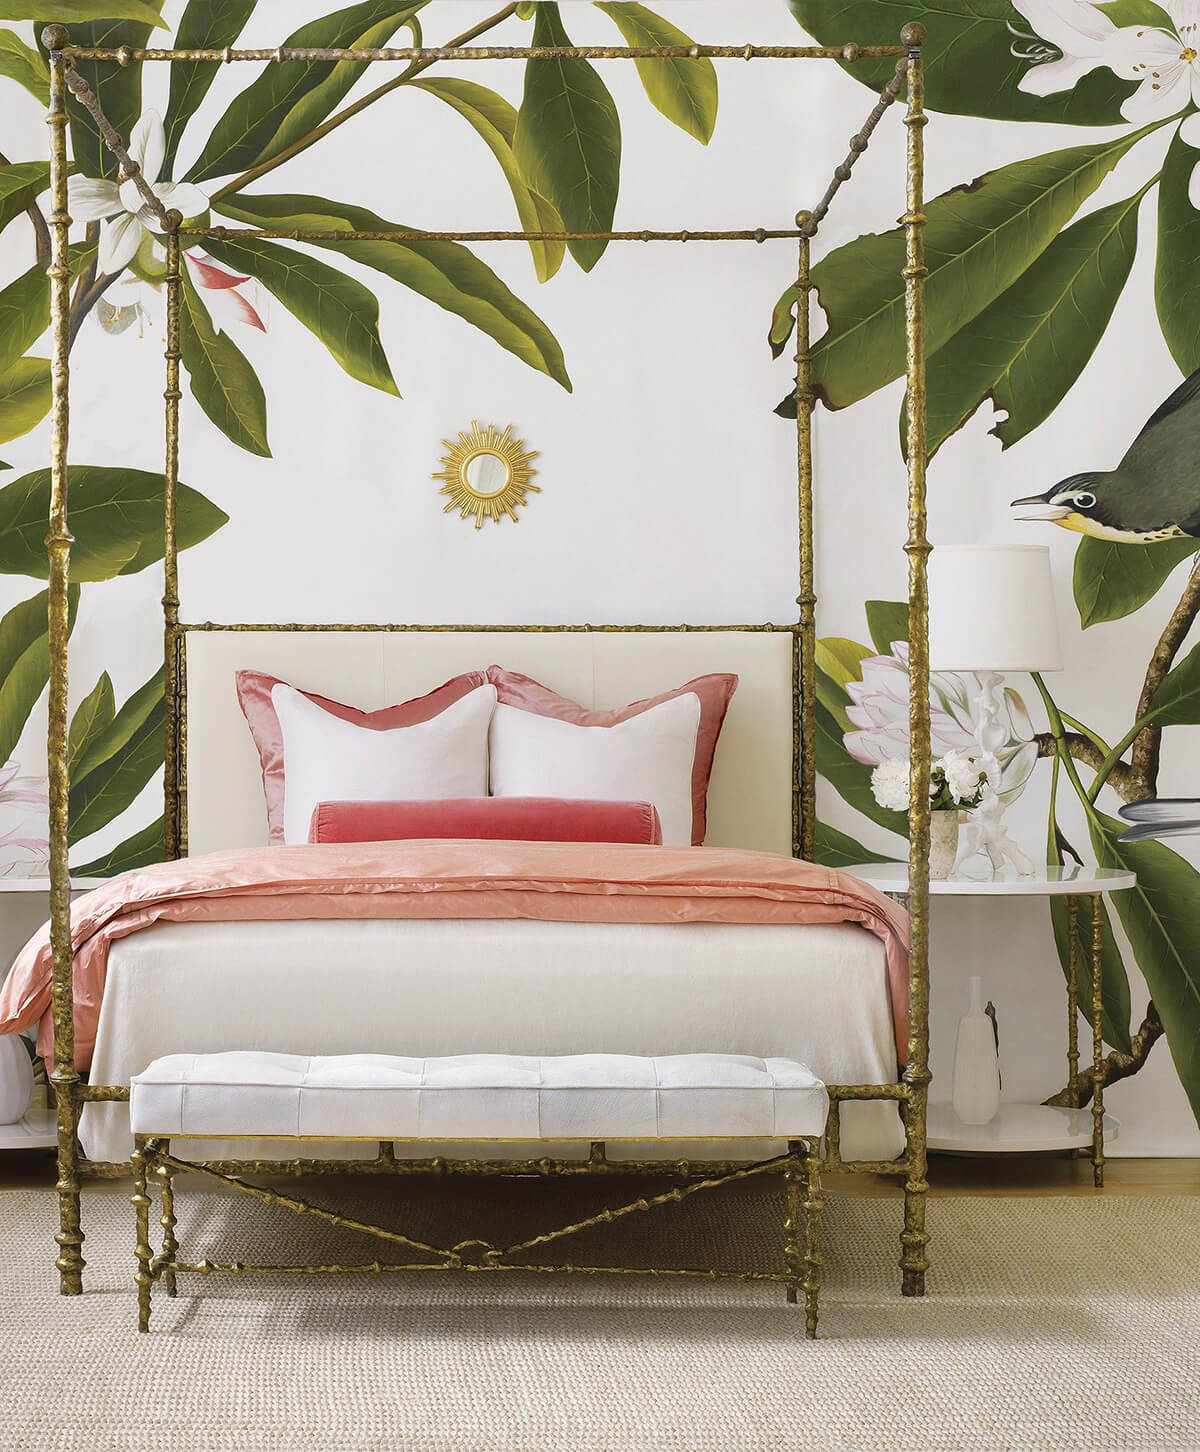 Golden Canopy Bed with Oversized Leaves